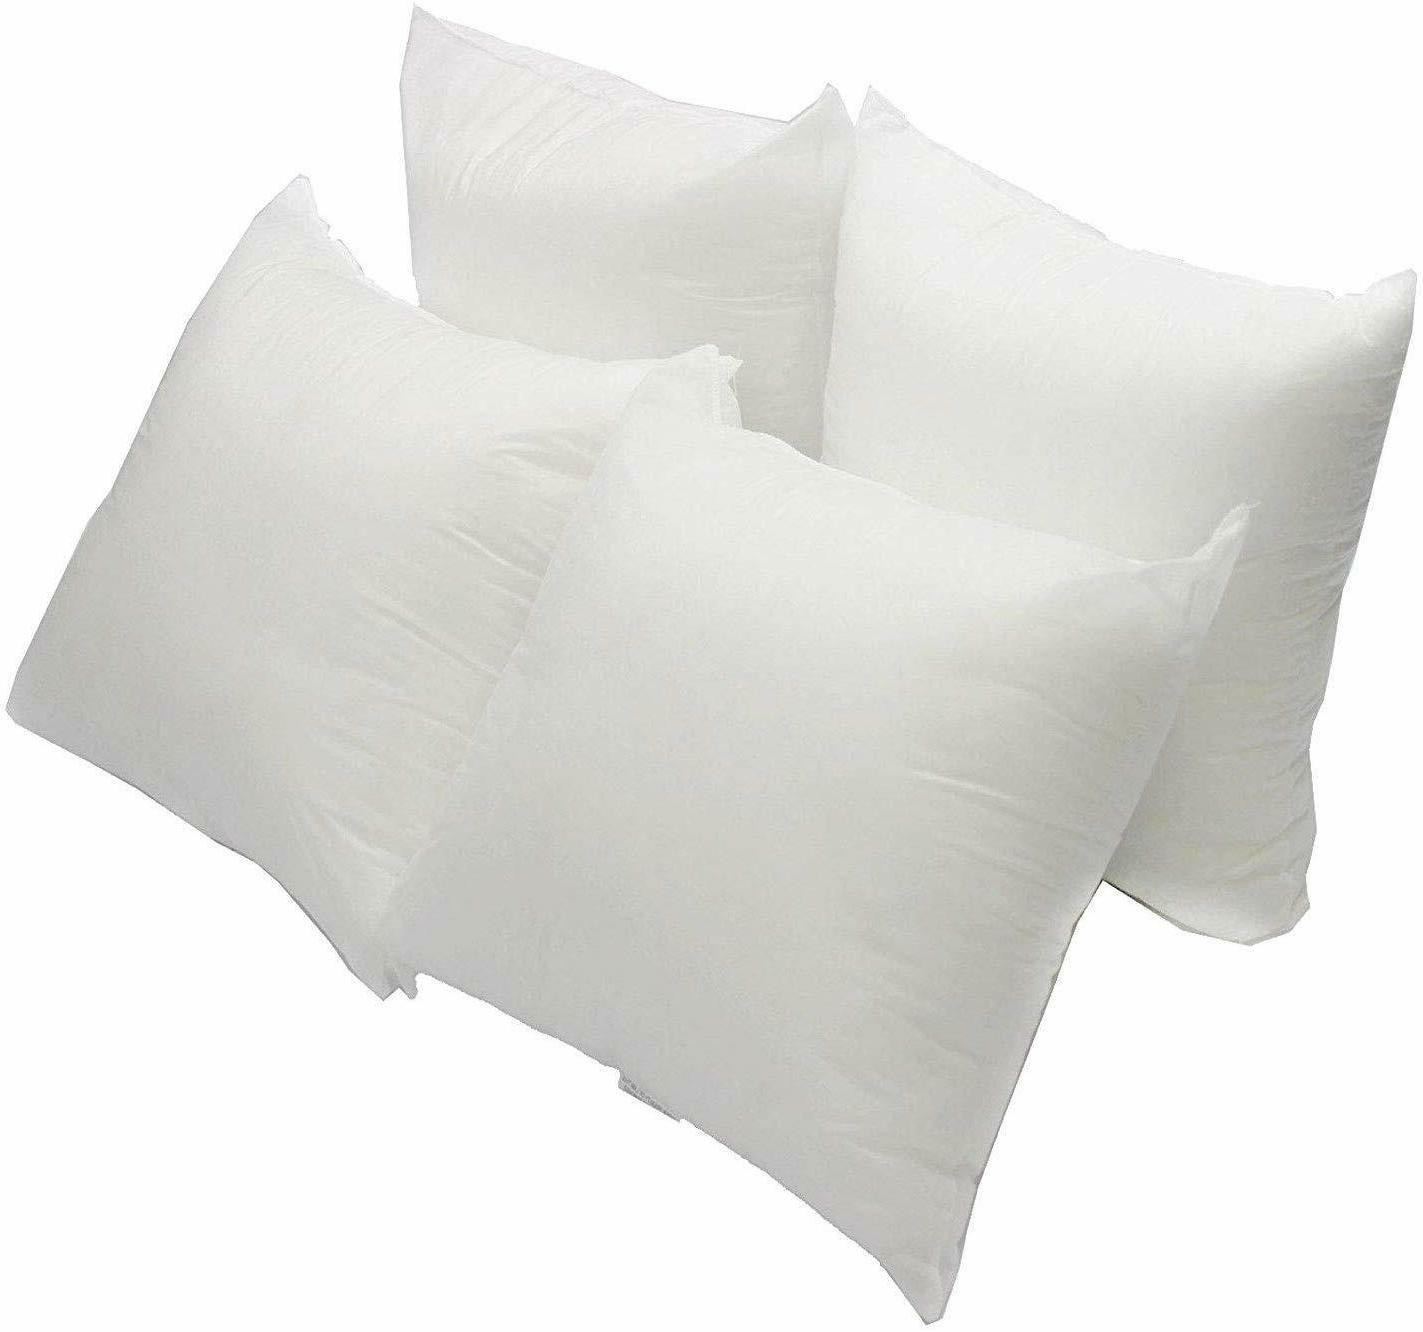 Mybecca Euro Pillow Form Insert ALL SIZES Made In USA